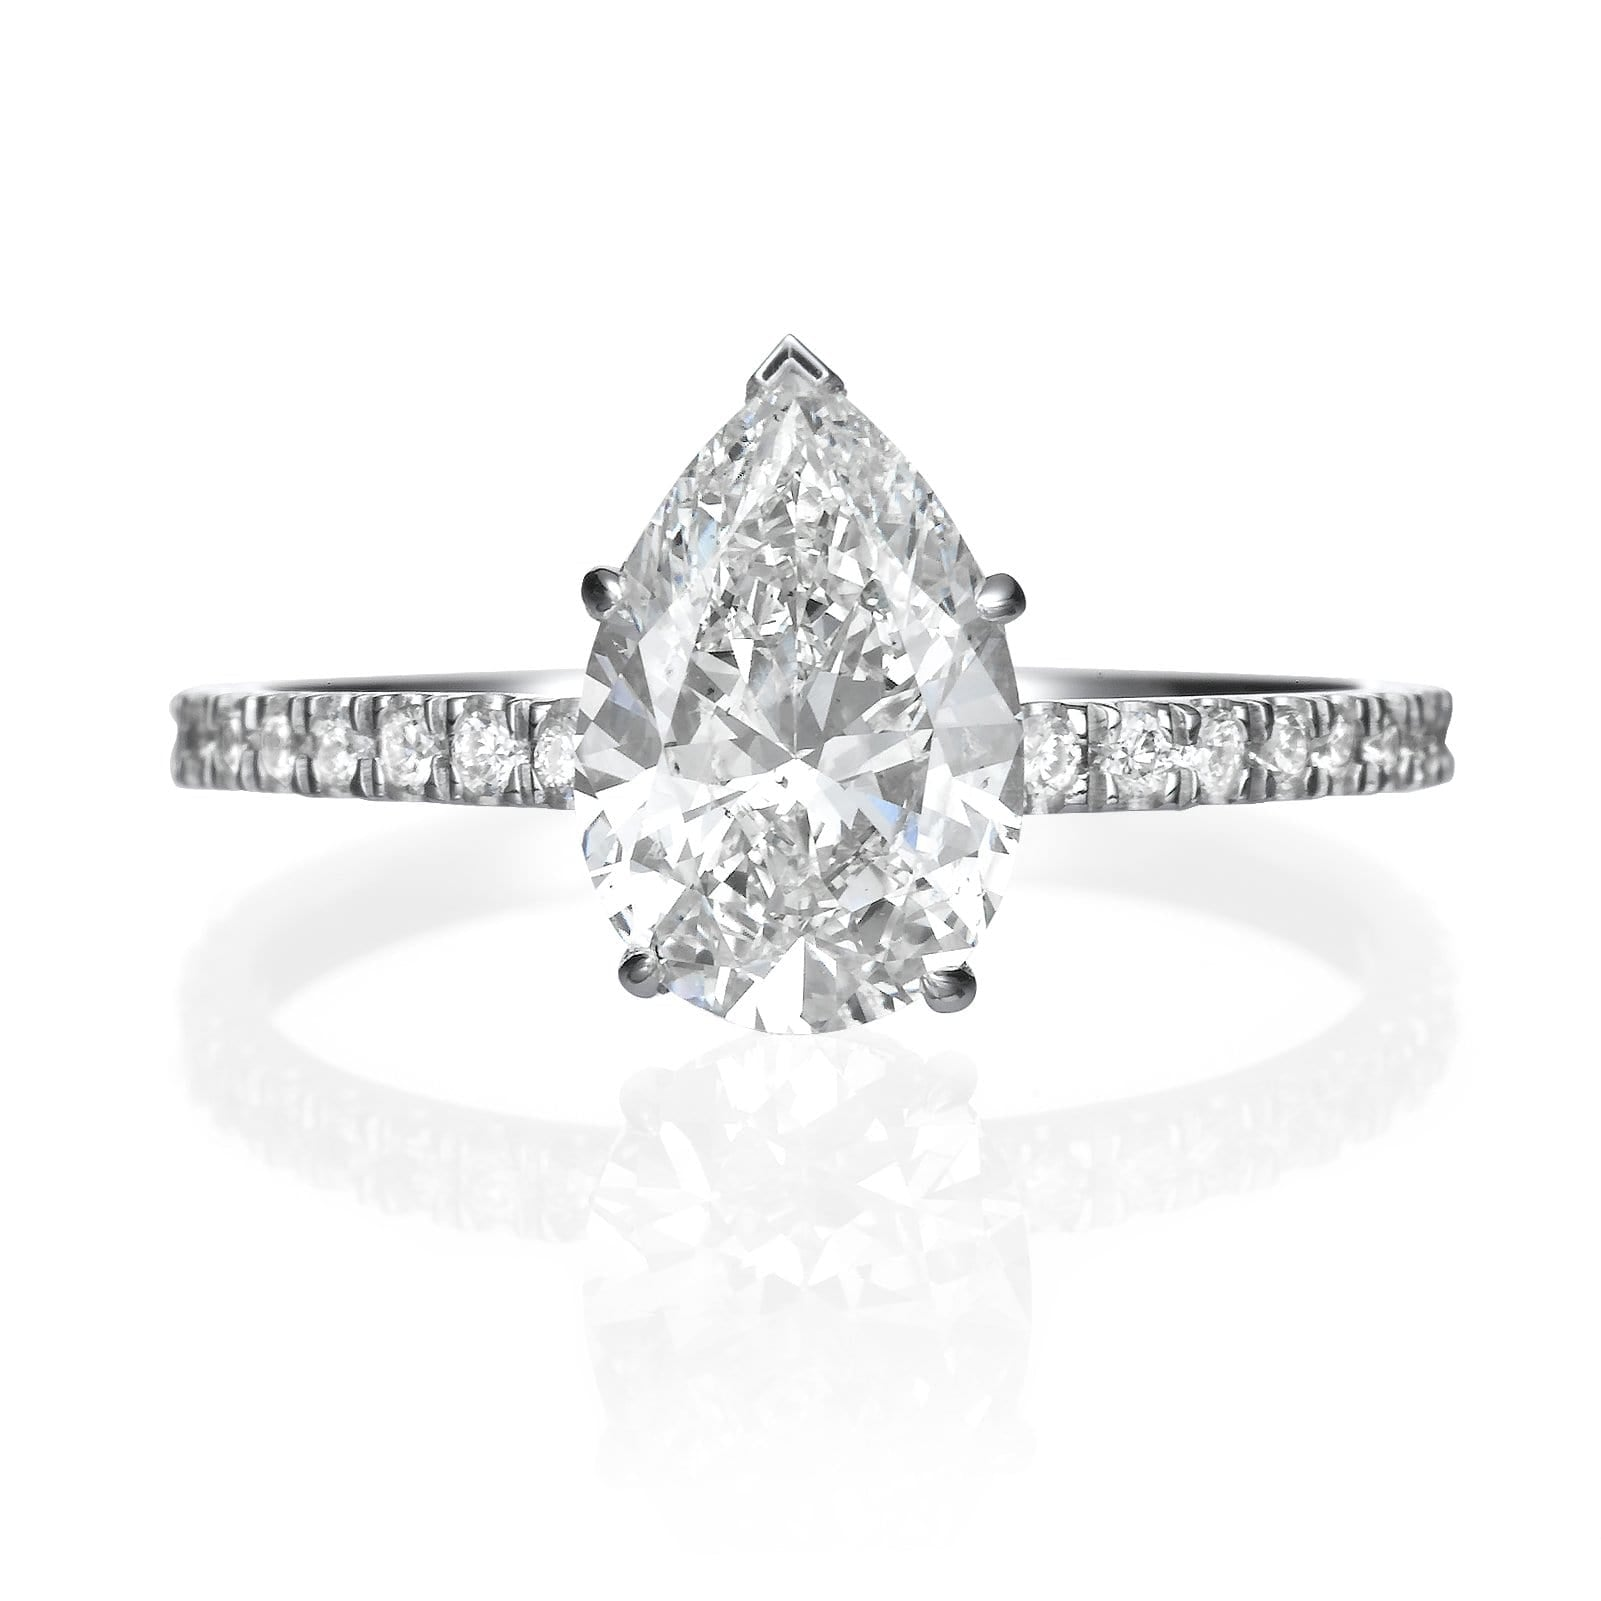 2.05 ct Pear Shaped Diamond Engagement Ring